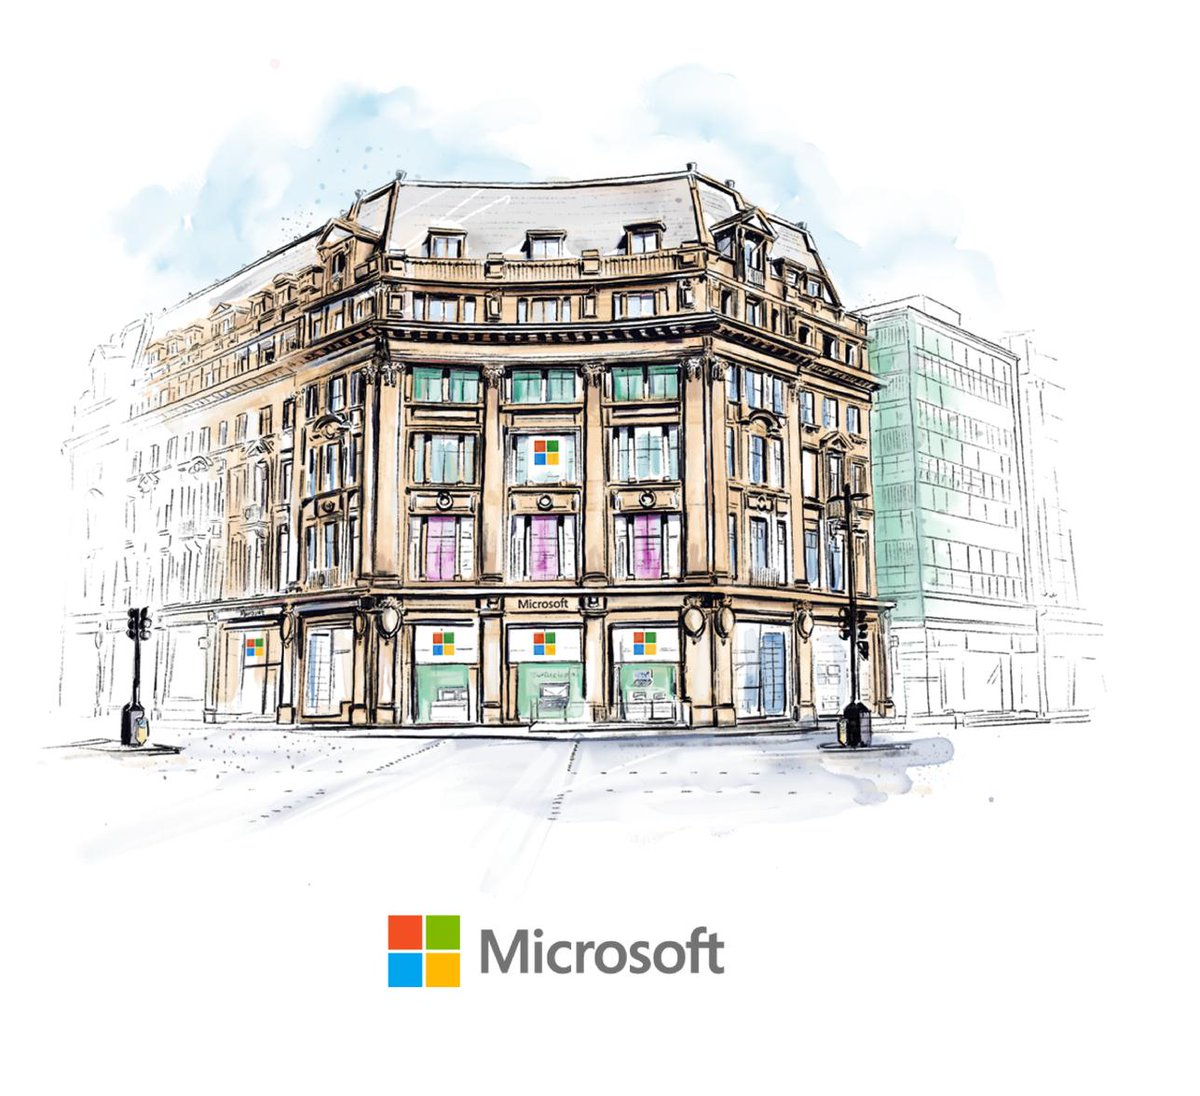 The flagship Microsoft Store on Oxford Circus opens today!Learn more about the store: http://msft.it/6017Tzek7 #MicrosoftLDN #Microsoft